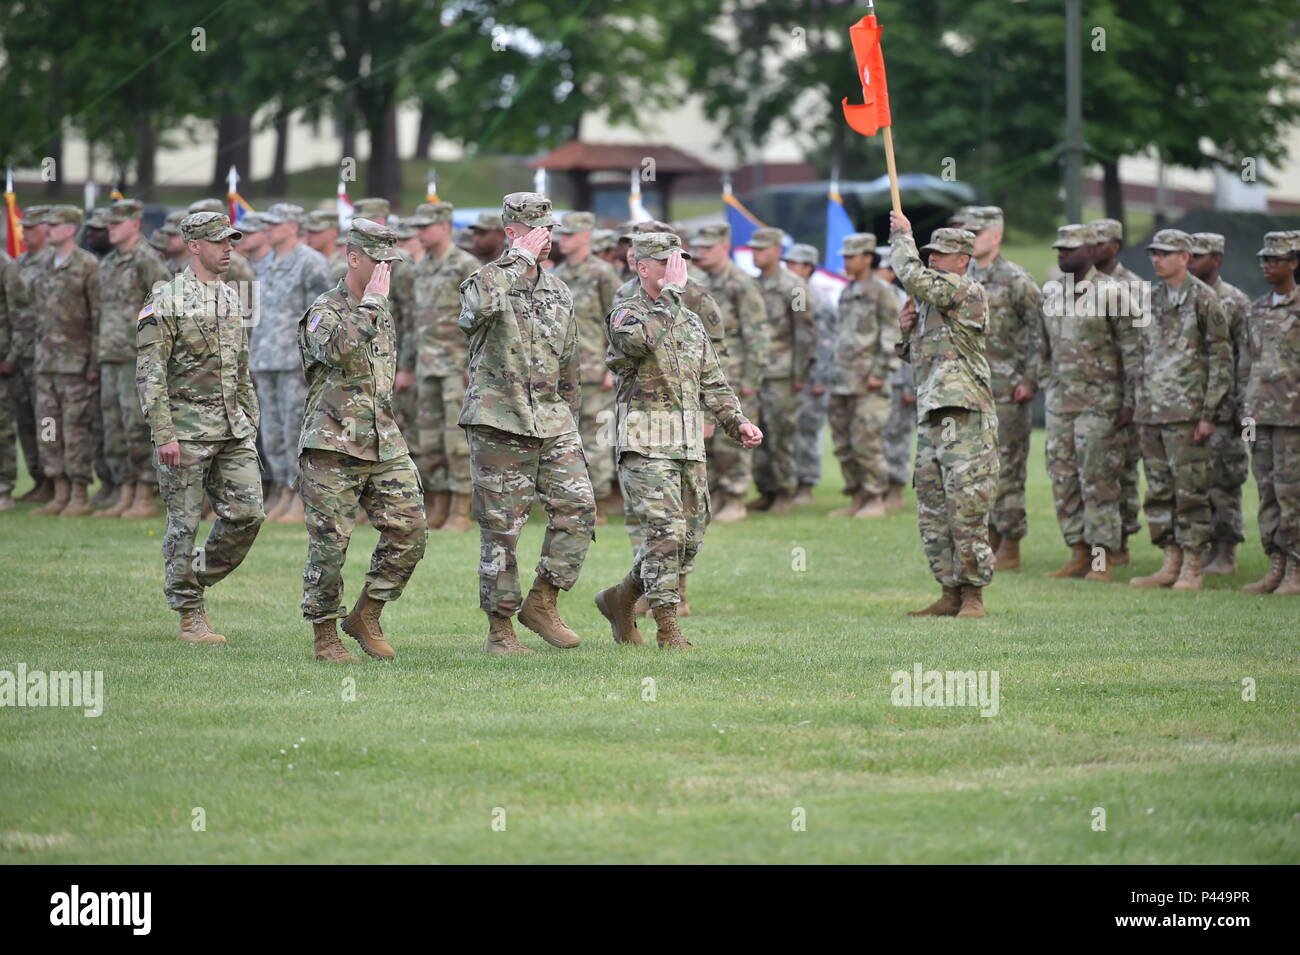 U S Army Lt Col Adam A Sannutti High Resolution Stock Photography And Images Alamy